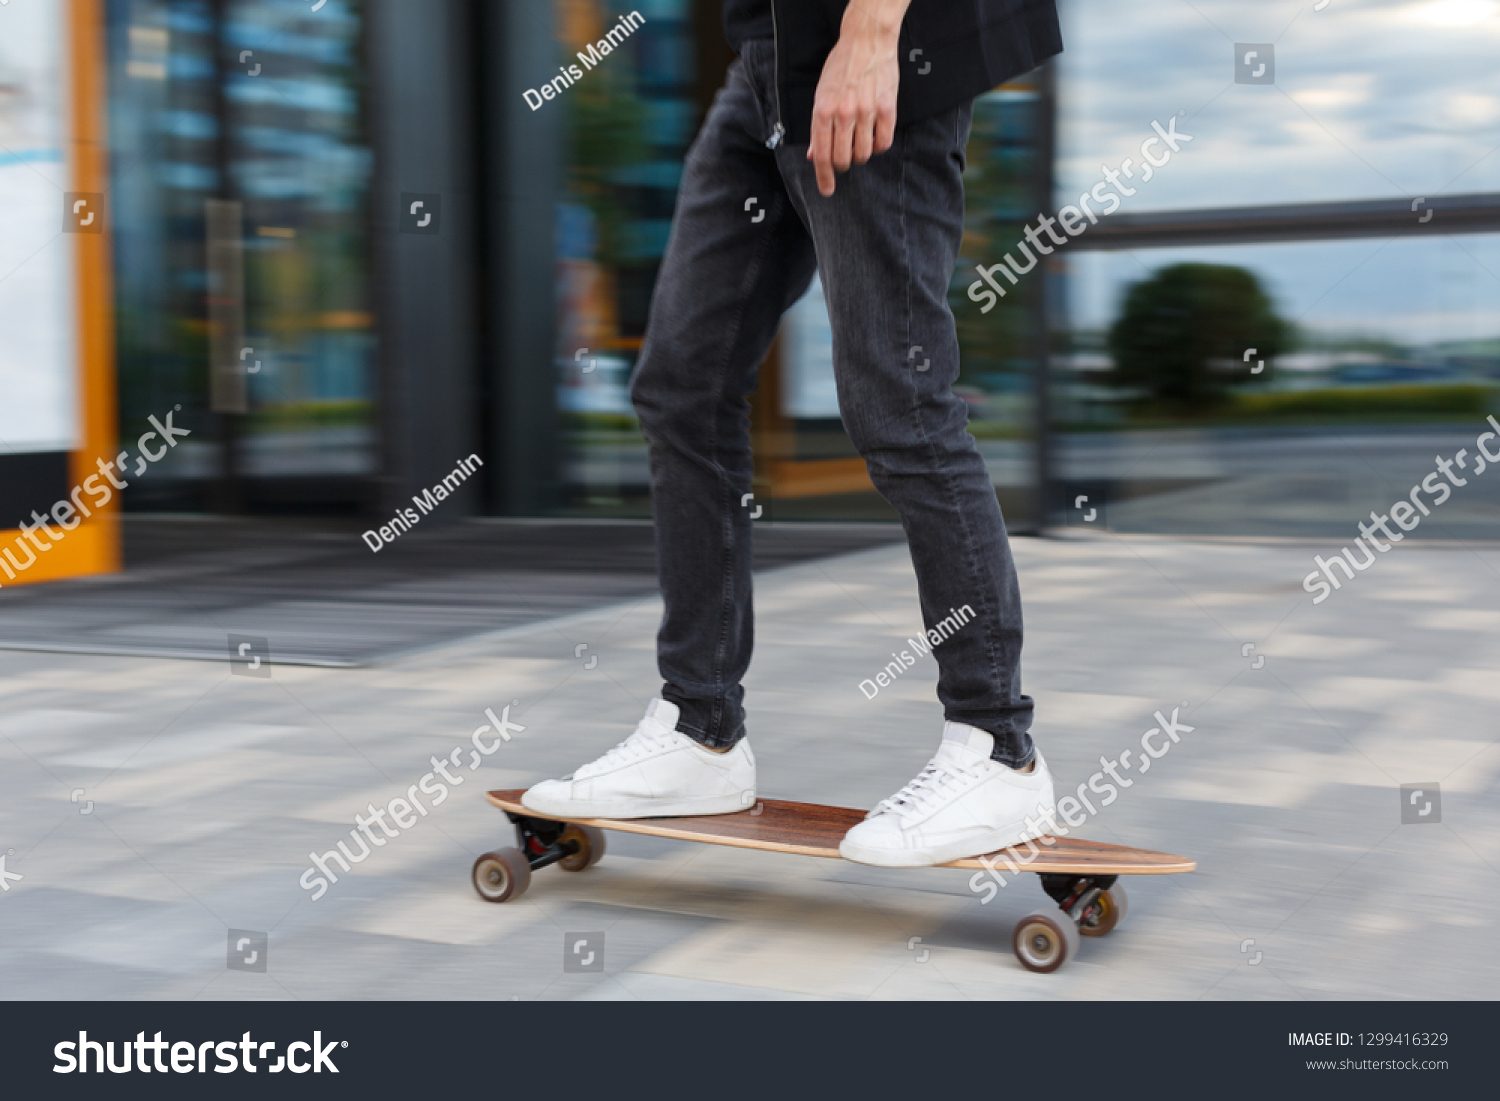 Shot of young man in black jeans and white sneakers riding a longboard in urban area